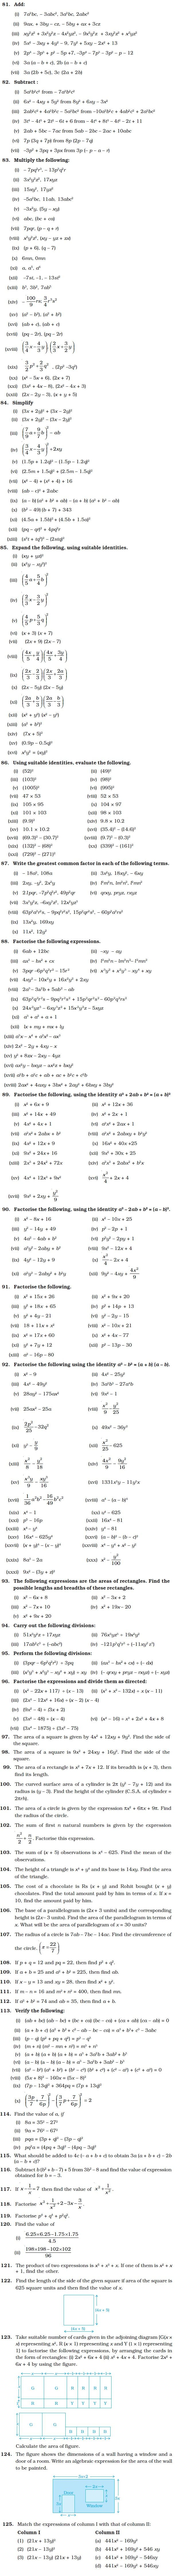 Algebraic Expressions, Identities and Factorisation